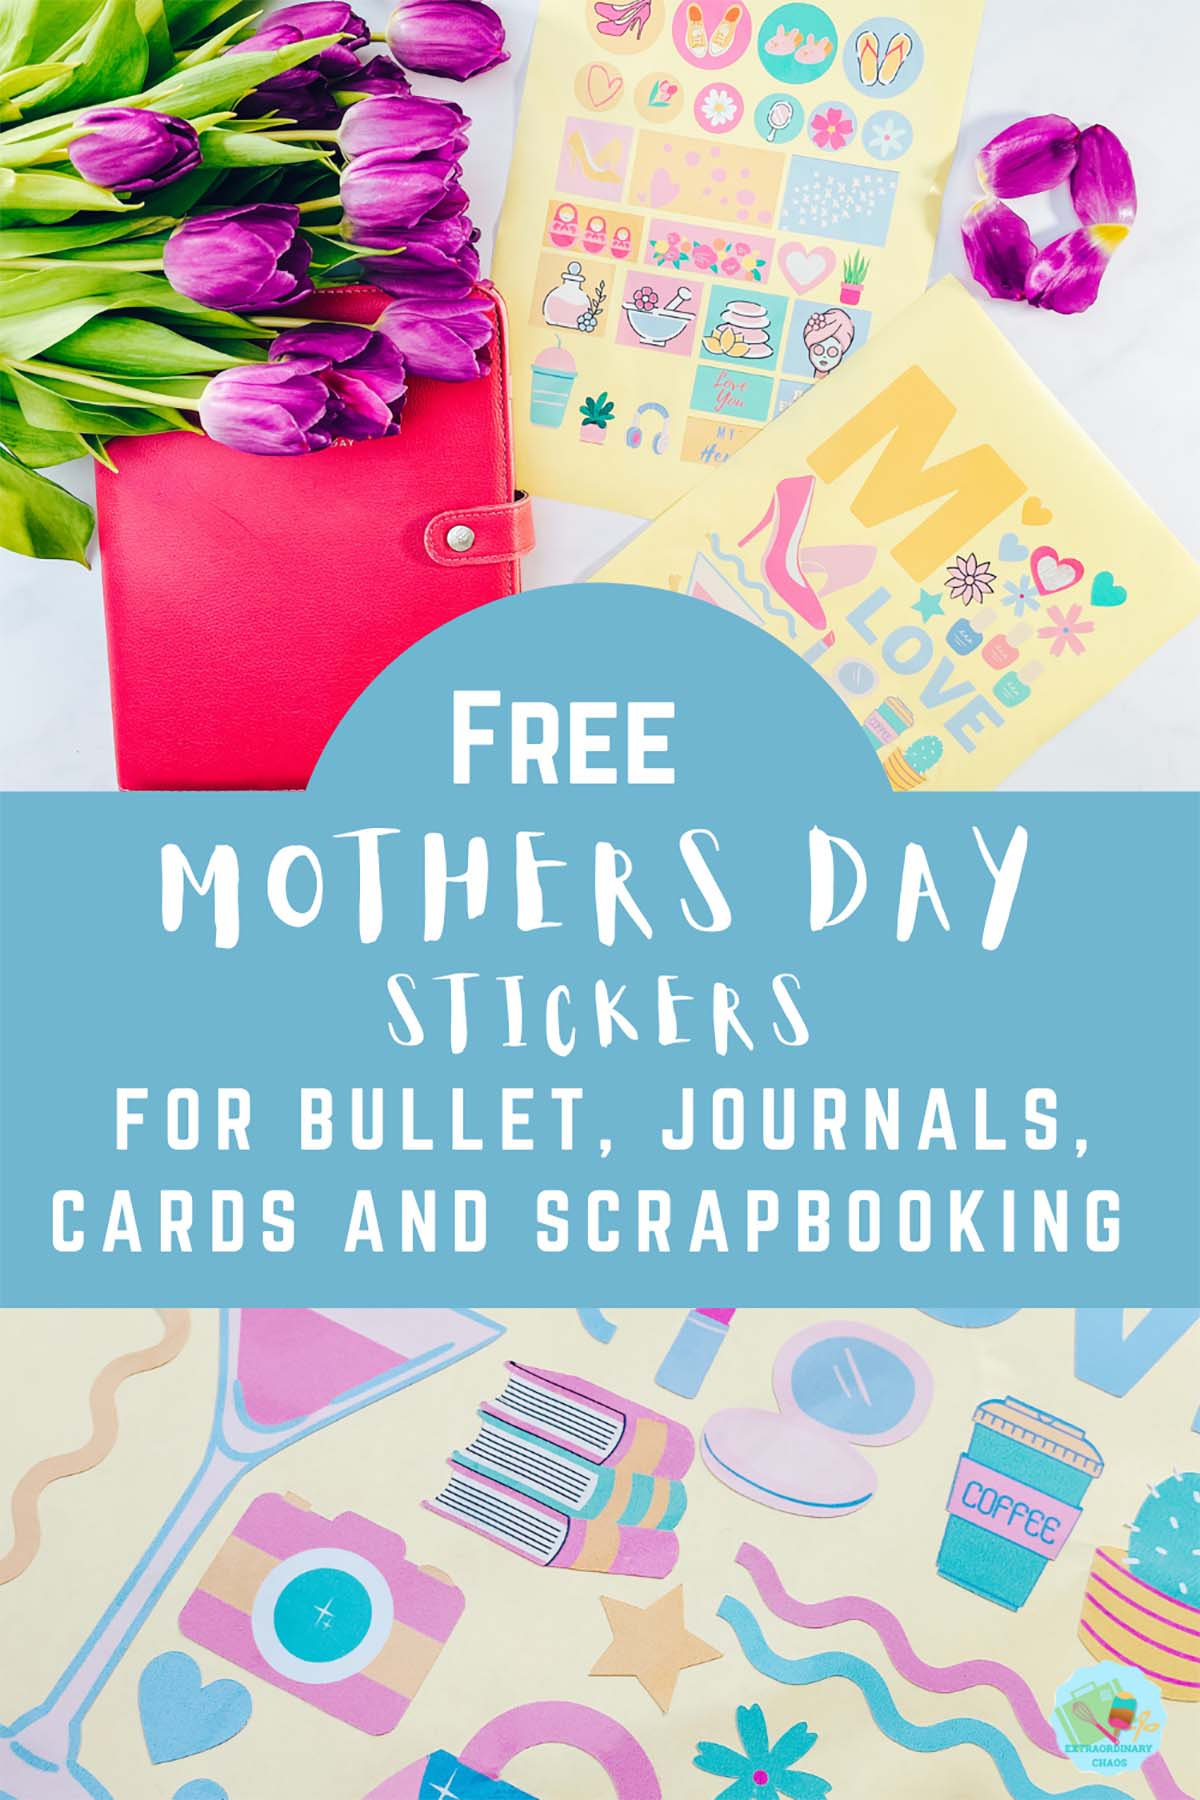 Free Mothers Day printable stickers for Cricut Print and cut or to cut out by hand fro cards, planners scrapbooking and bullet journals